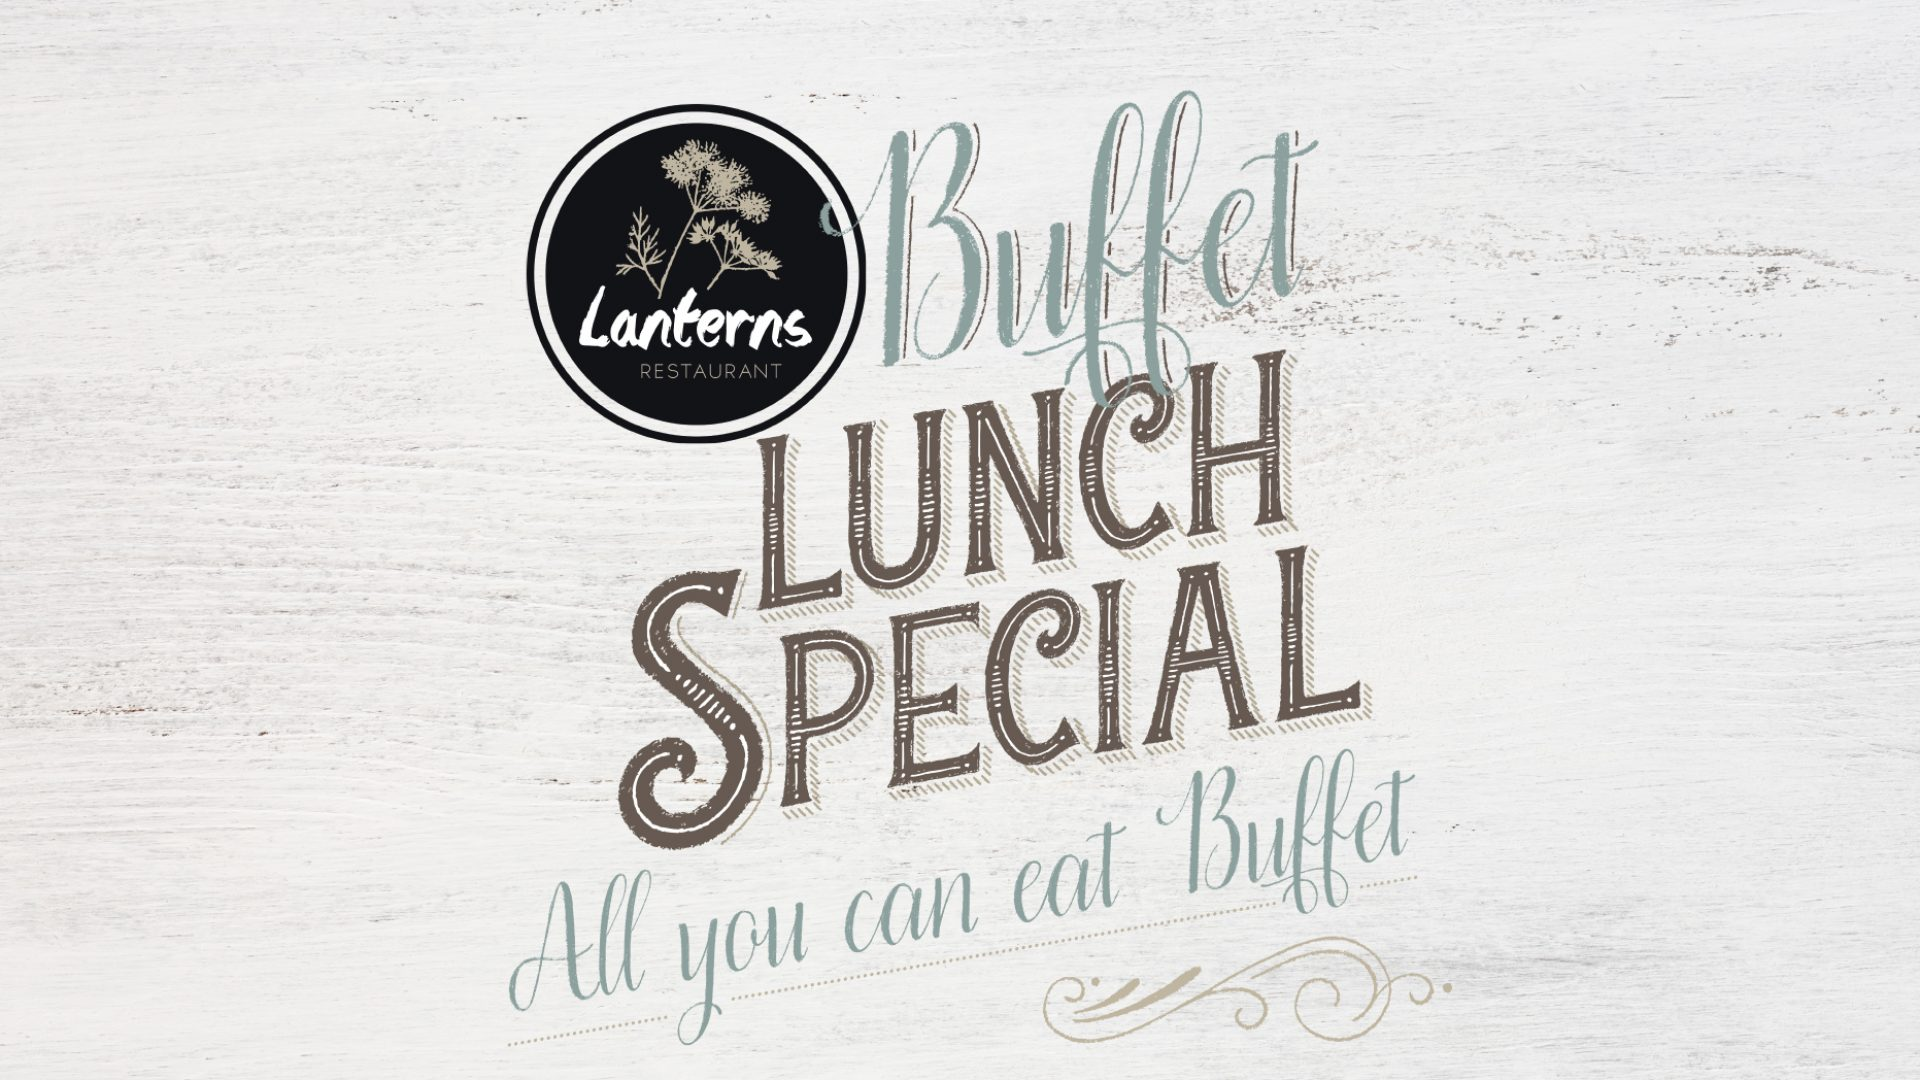 Lanterns Lunch Special at Brothers Leagues Club Cairns